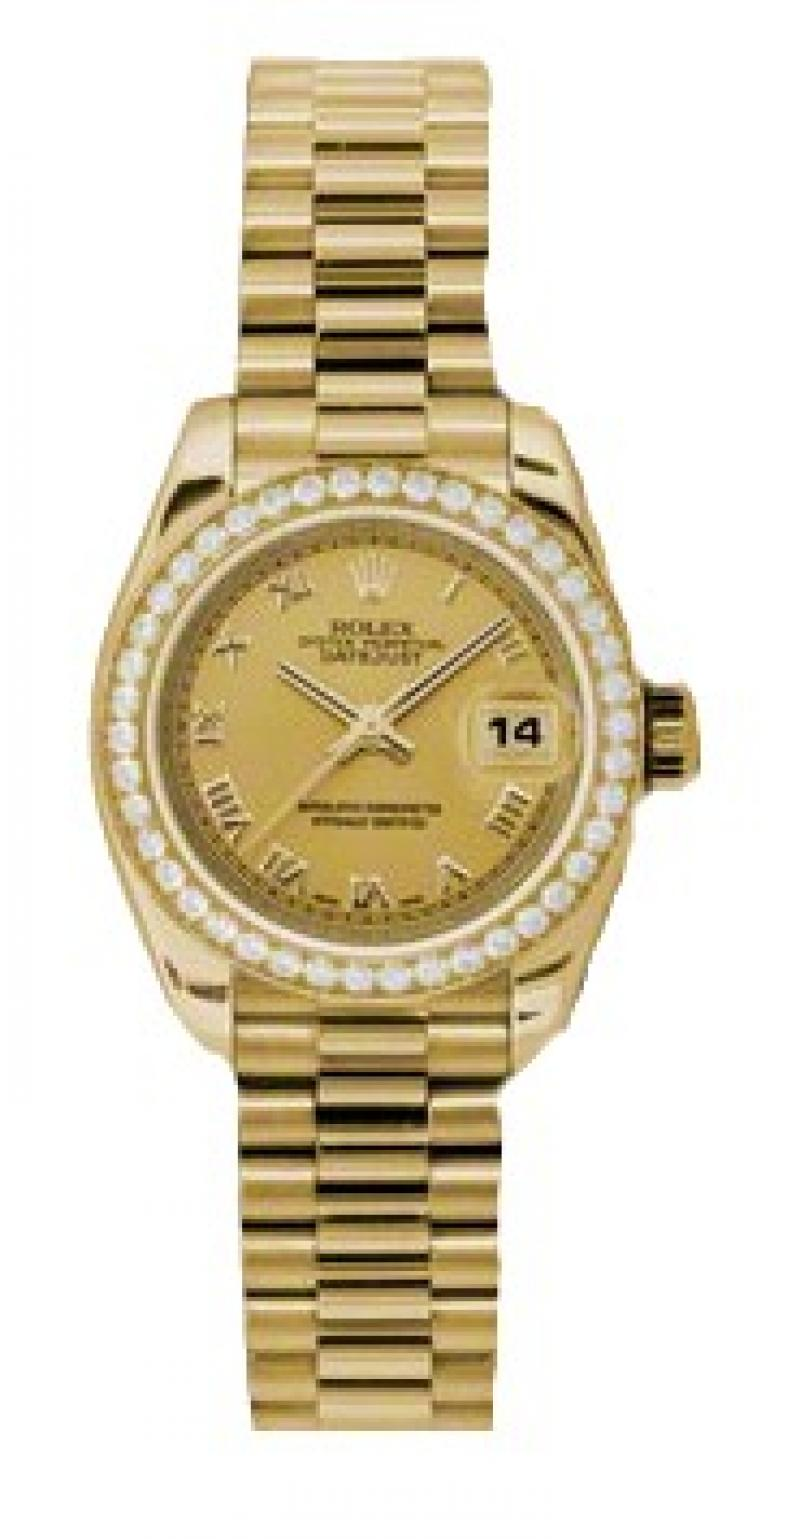 179138 chrp Rolex 26mm Yellow Gold Datejust Ladies